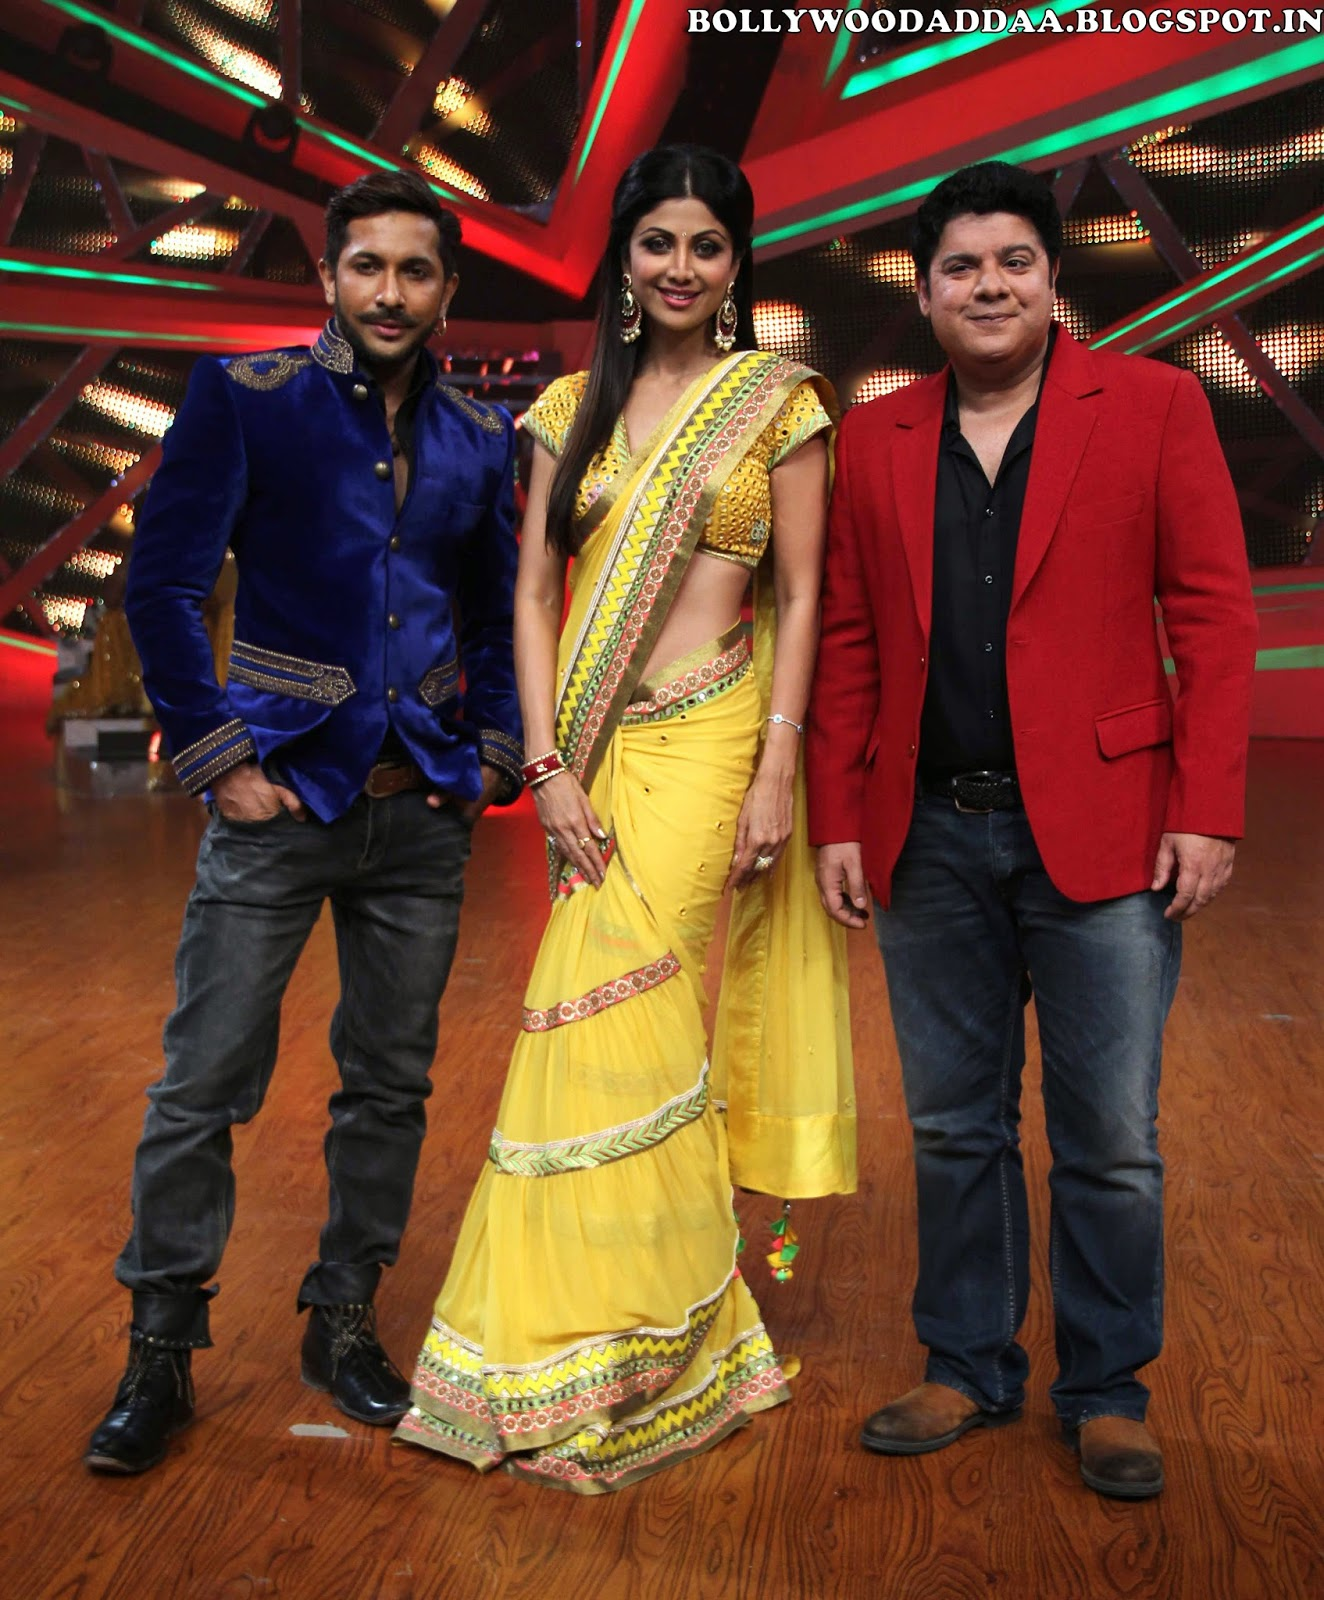 Terence Lewis , Sajid Khan on sets of Nach Baliye Hot Unseen Pics Of Shilpa Shetty